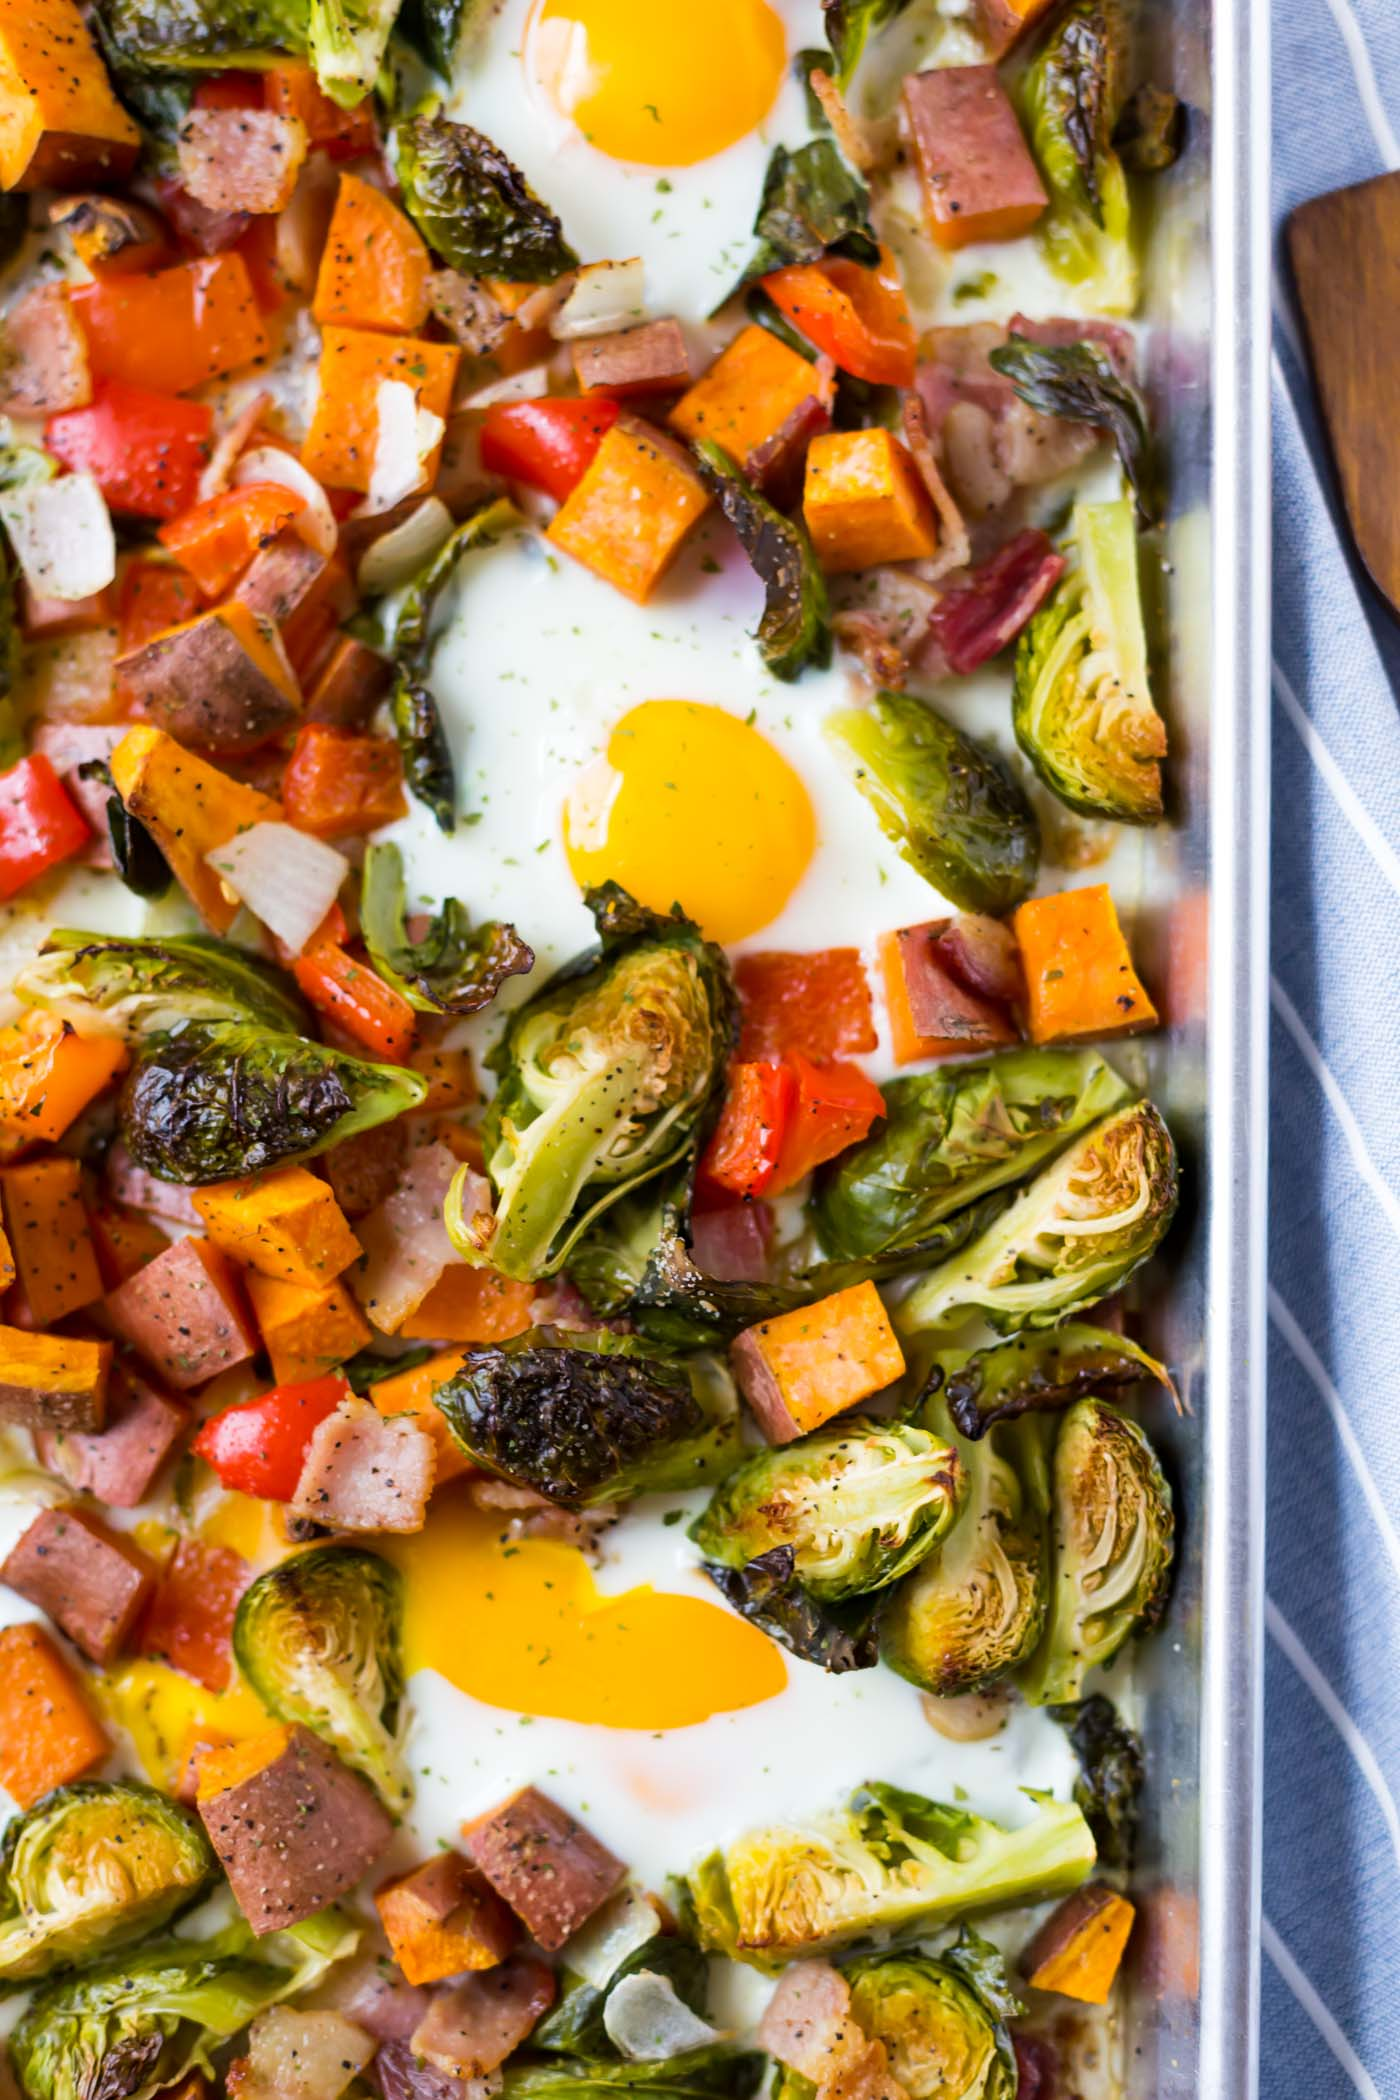 Brussels sprouts, sweet potato, bacon, bell peppers, onions, and eggs baked on a sheet pan.